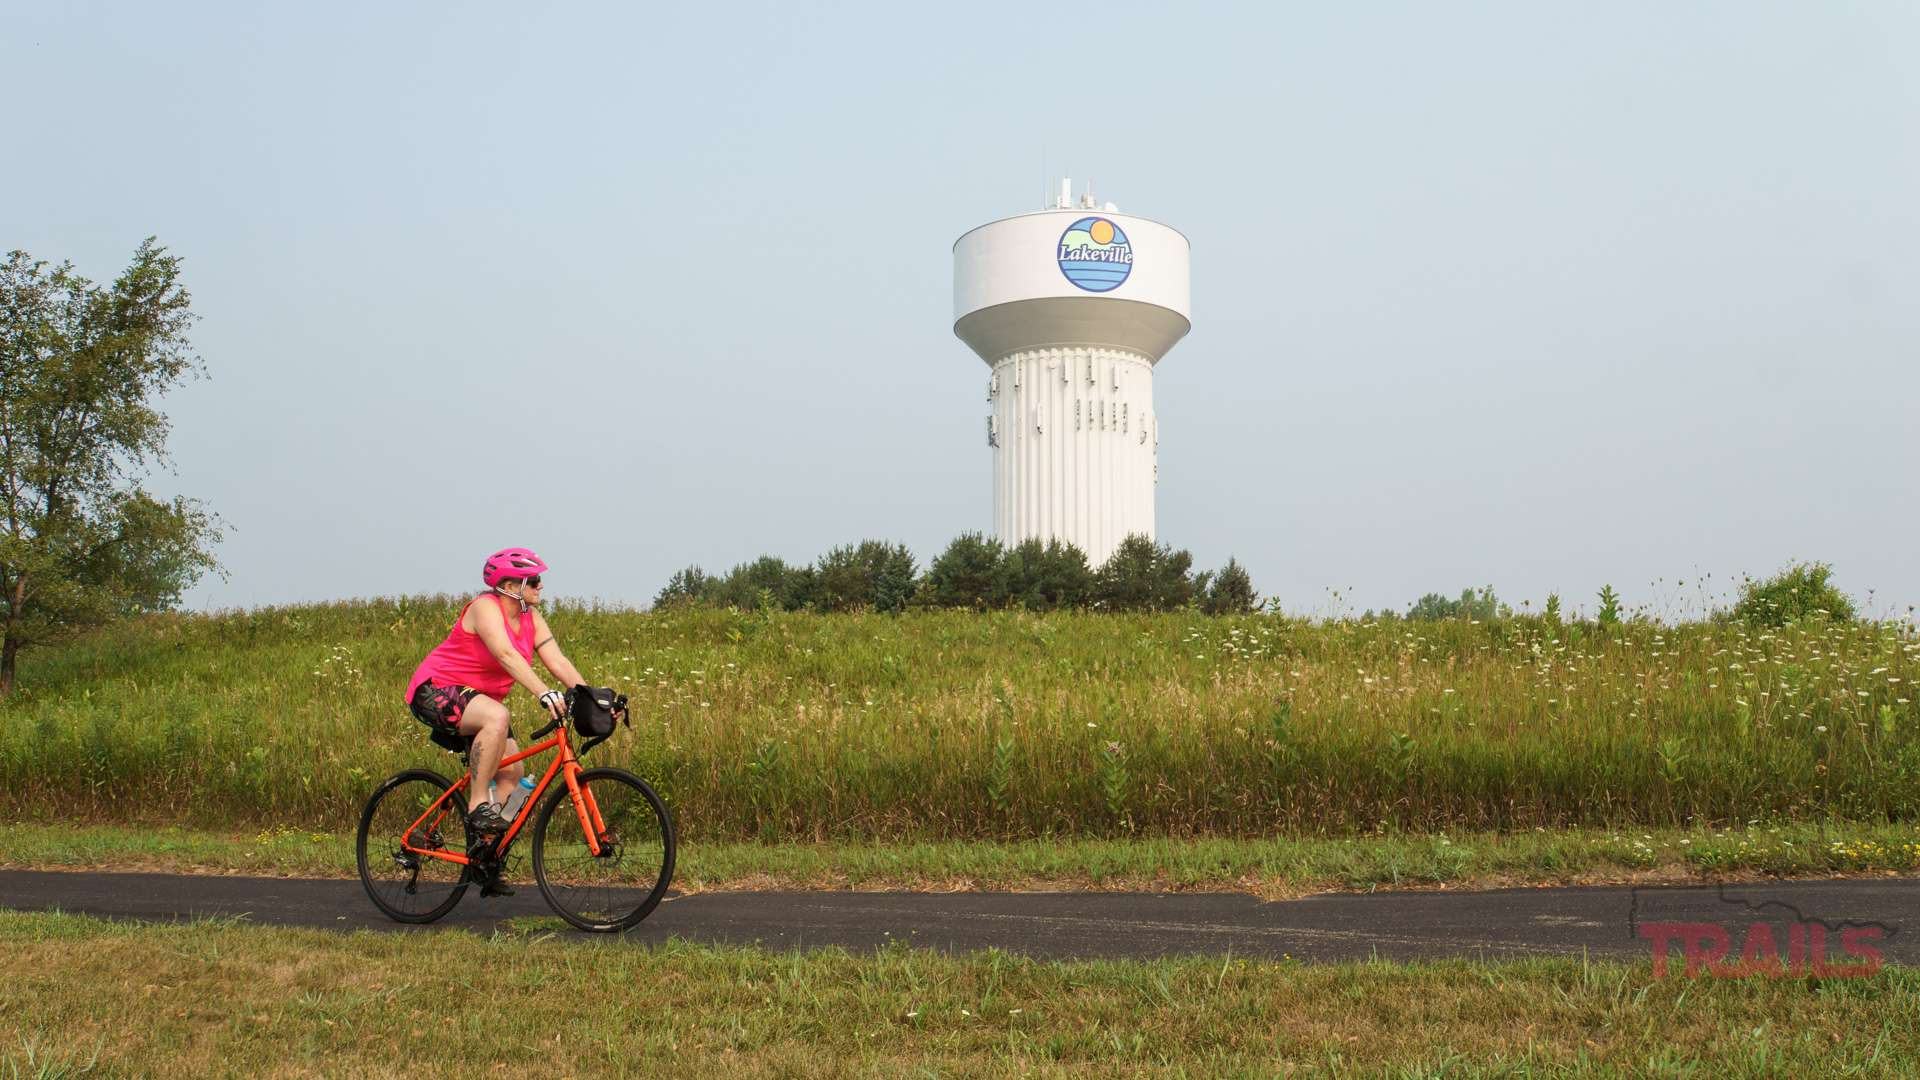 A woman rides a bike on a trail in front of a water tower in Lakeville MN